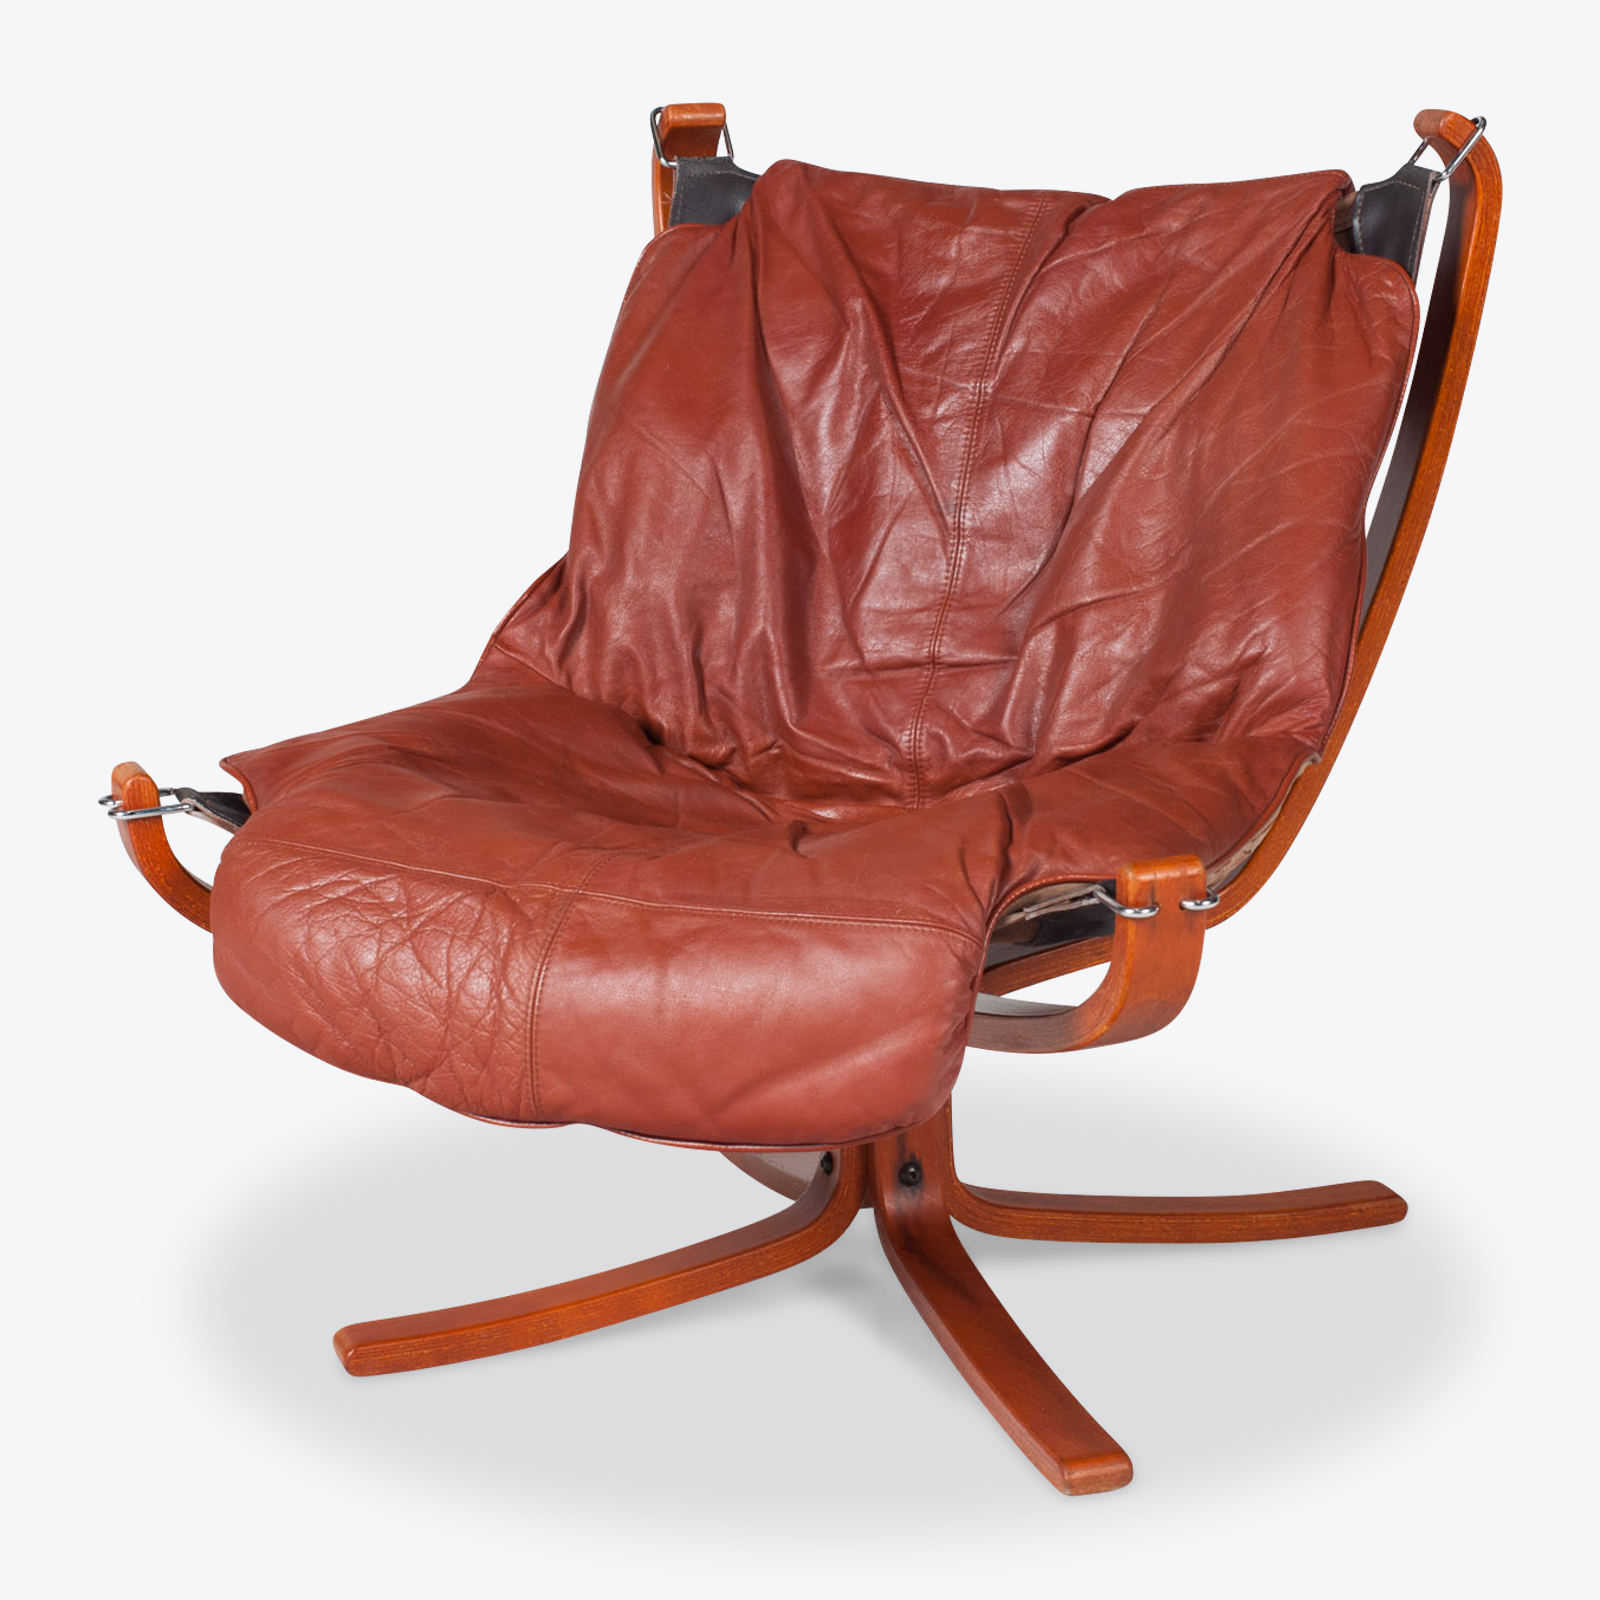 Low Back Falcon Armchair By Sigurd Ressell For Vatne Mobler In Patinated Cognac Leather 1970s Norway 01